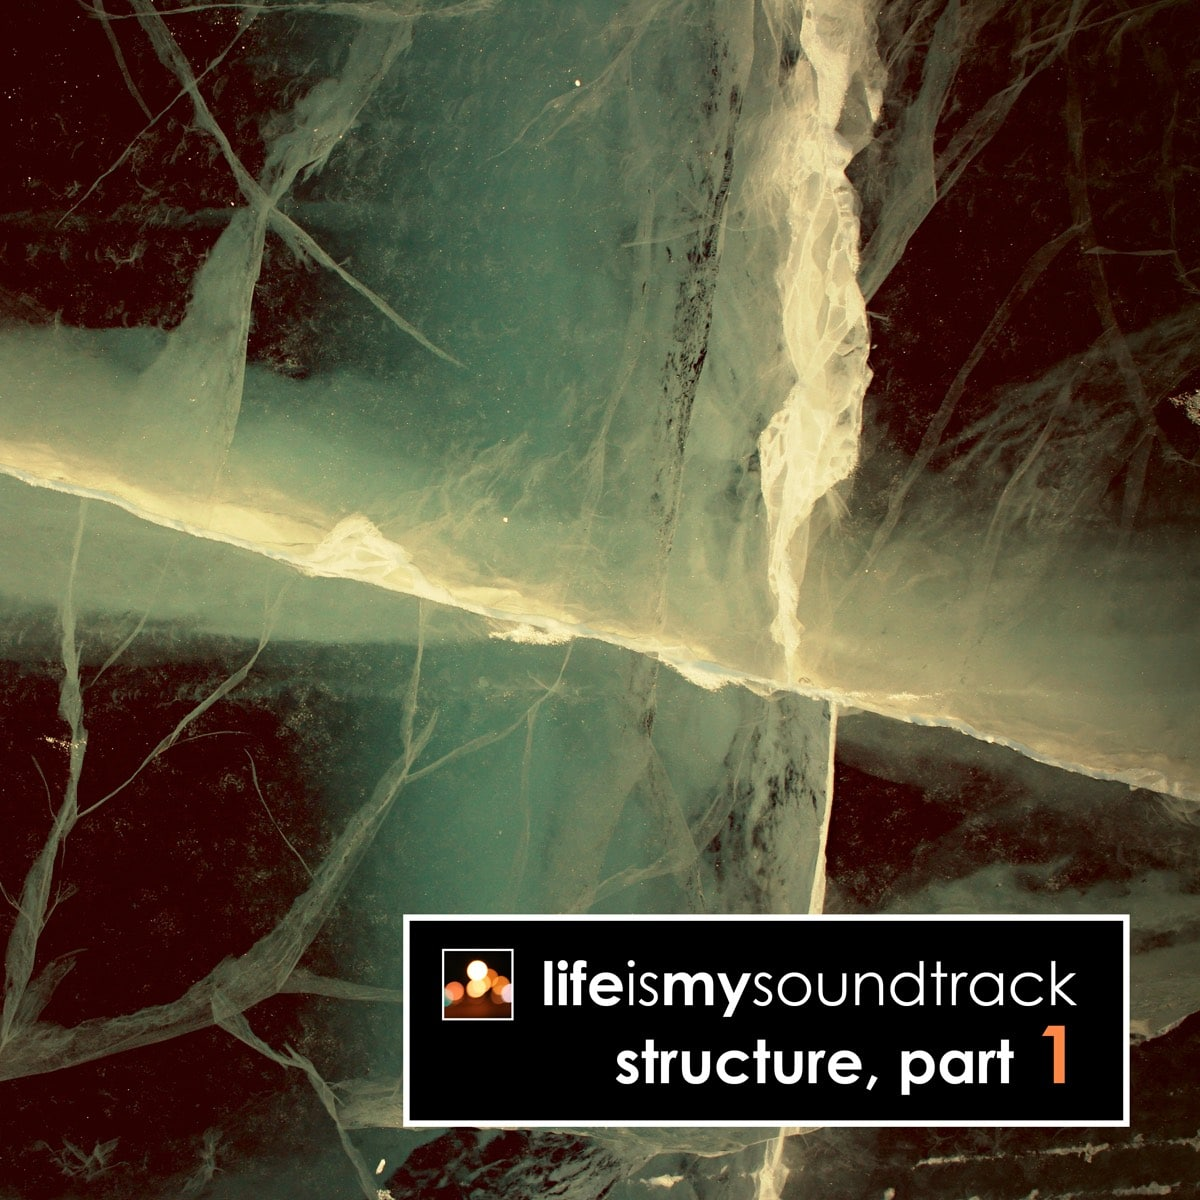 The album Structure, Part 1 by Life Is My Soundtrack - Part 1 of a collection of minimal, electronic songs